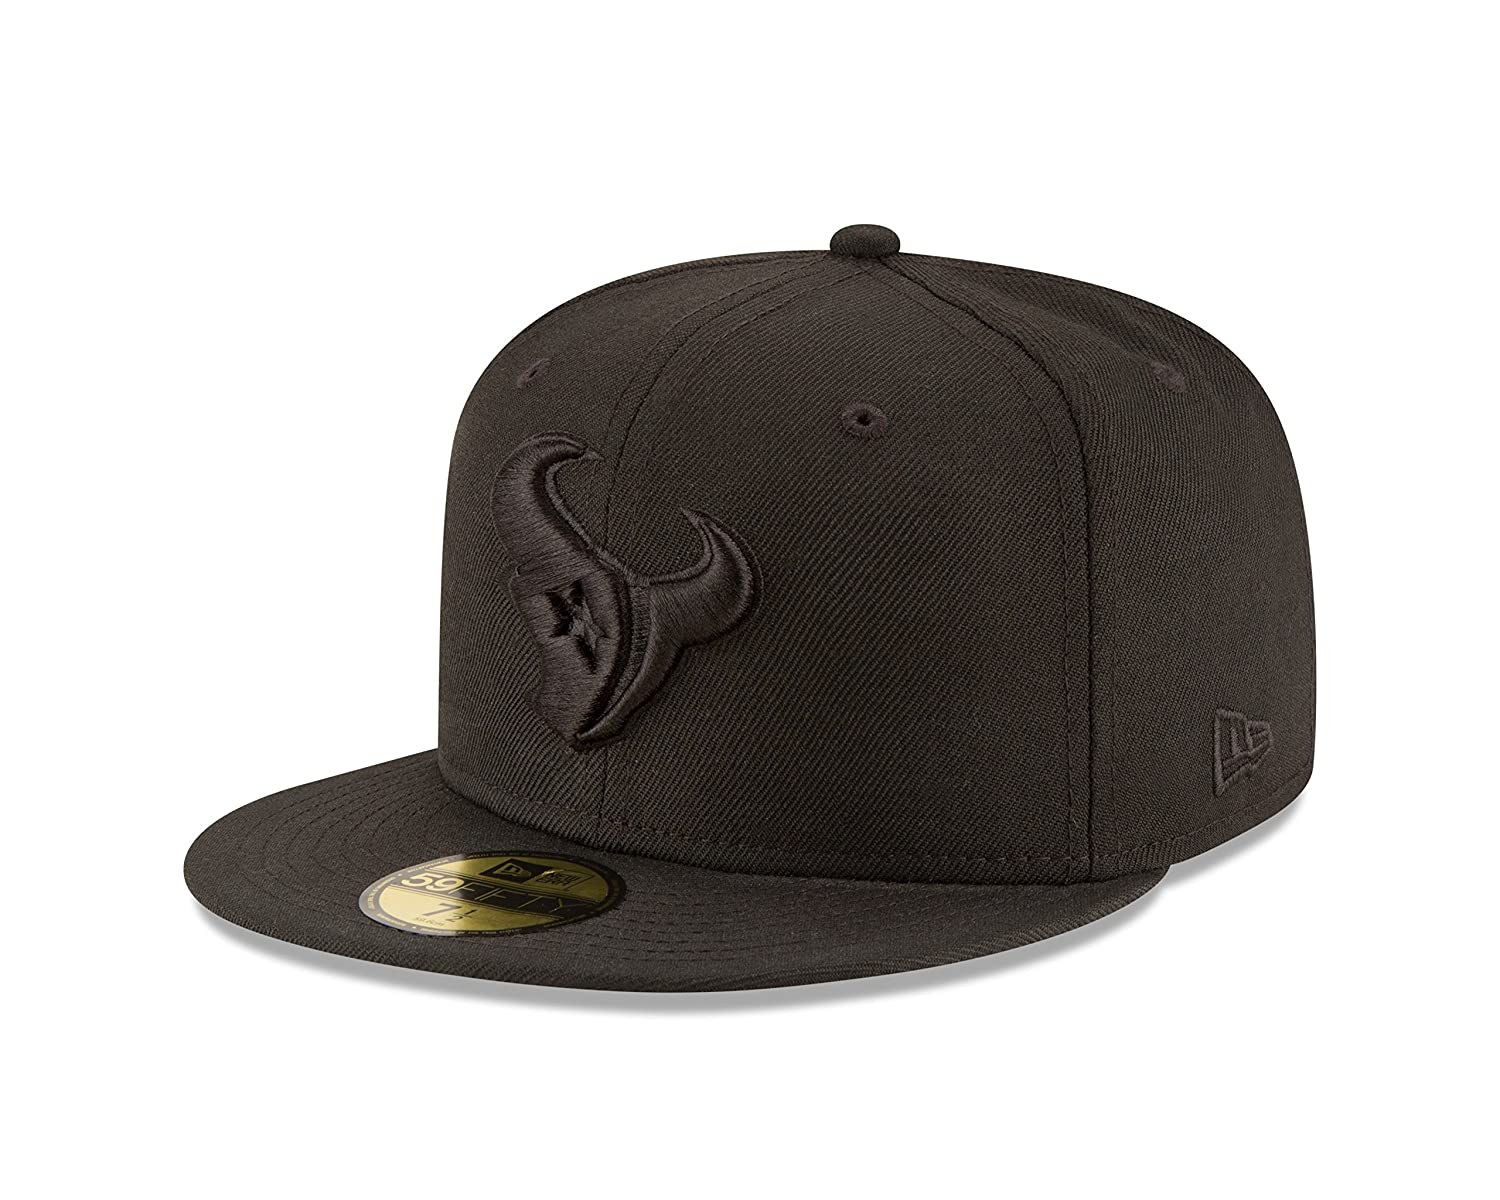 New Era Houston Texans Black On Black cap 59fifty 5950 Fitted Men NFL Special Limited Edition